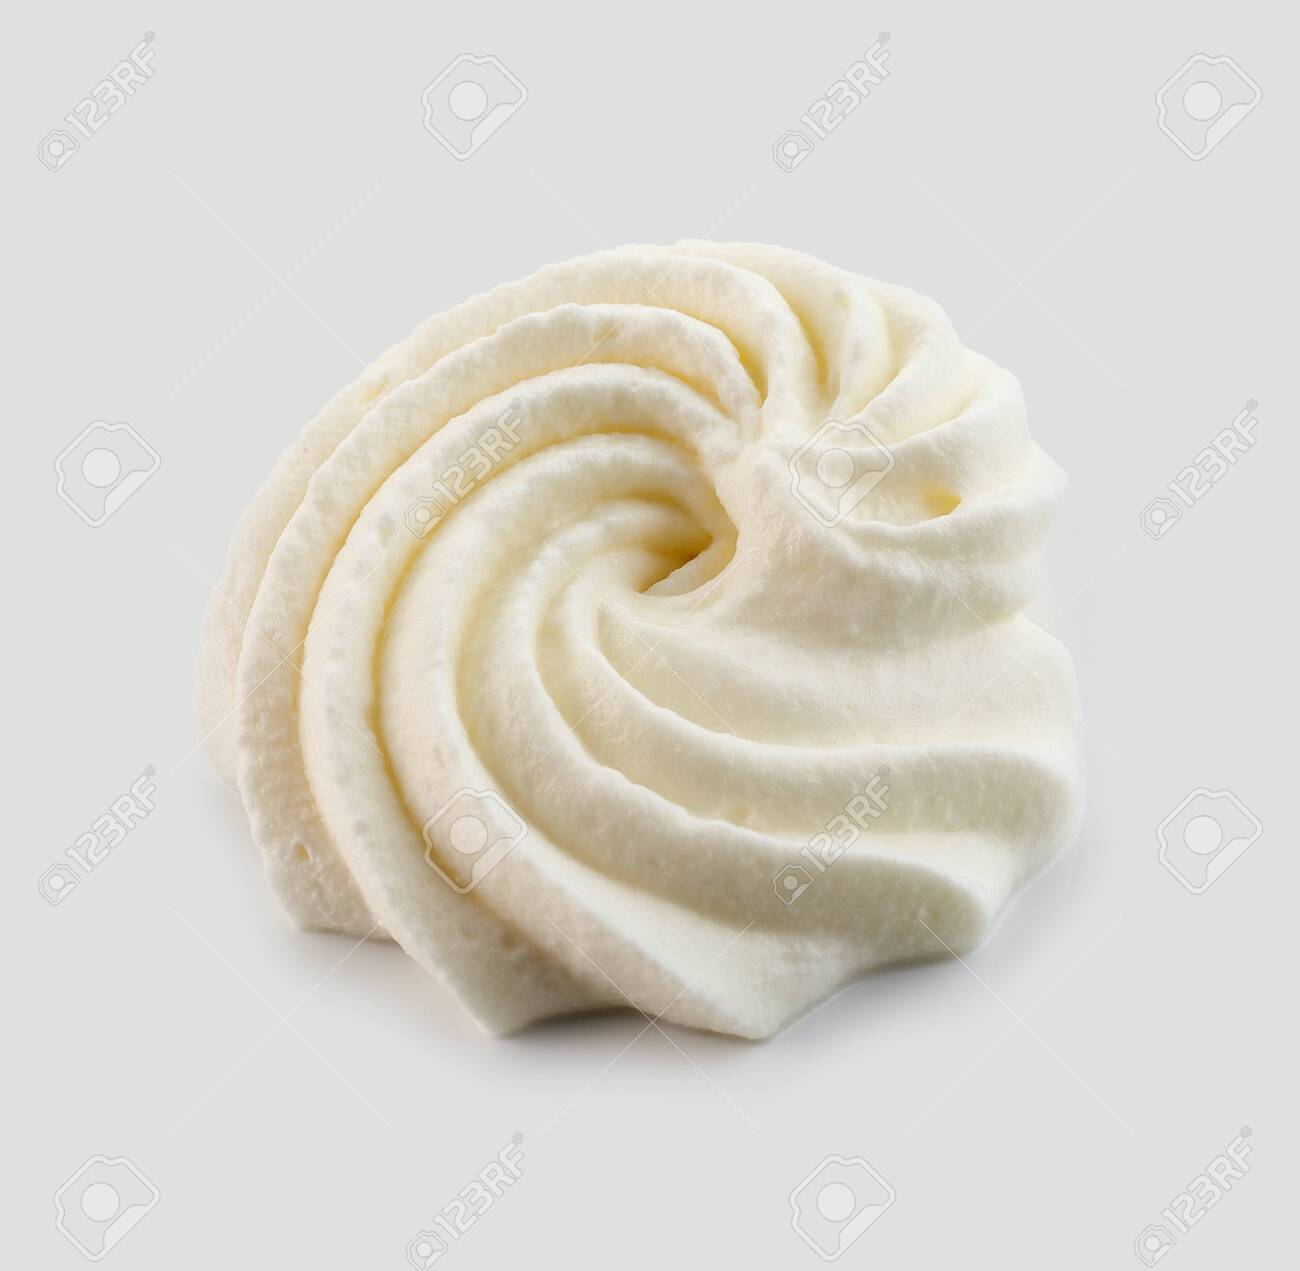 whipped cream isolated on light grey background - 147602970